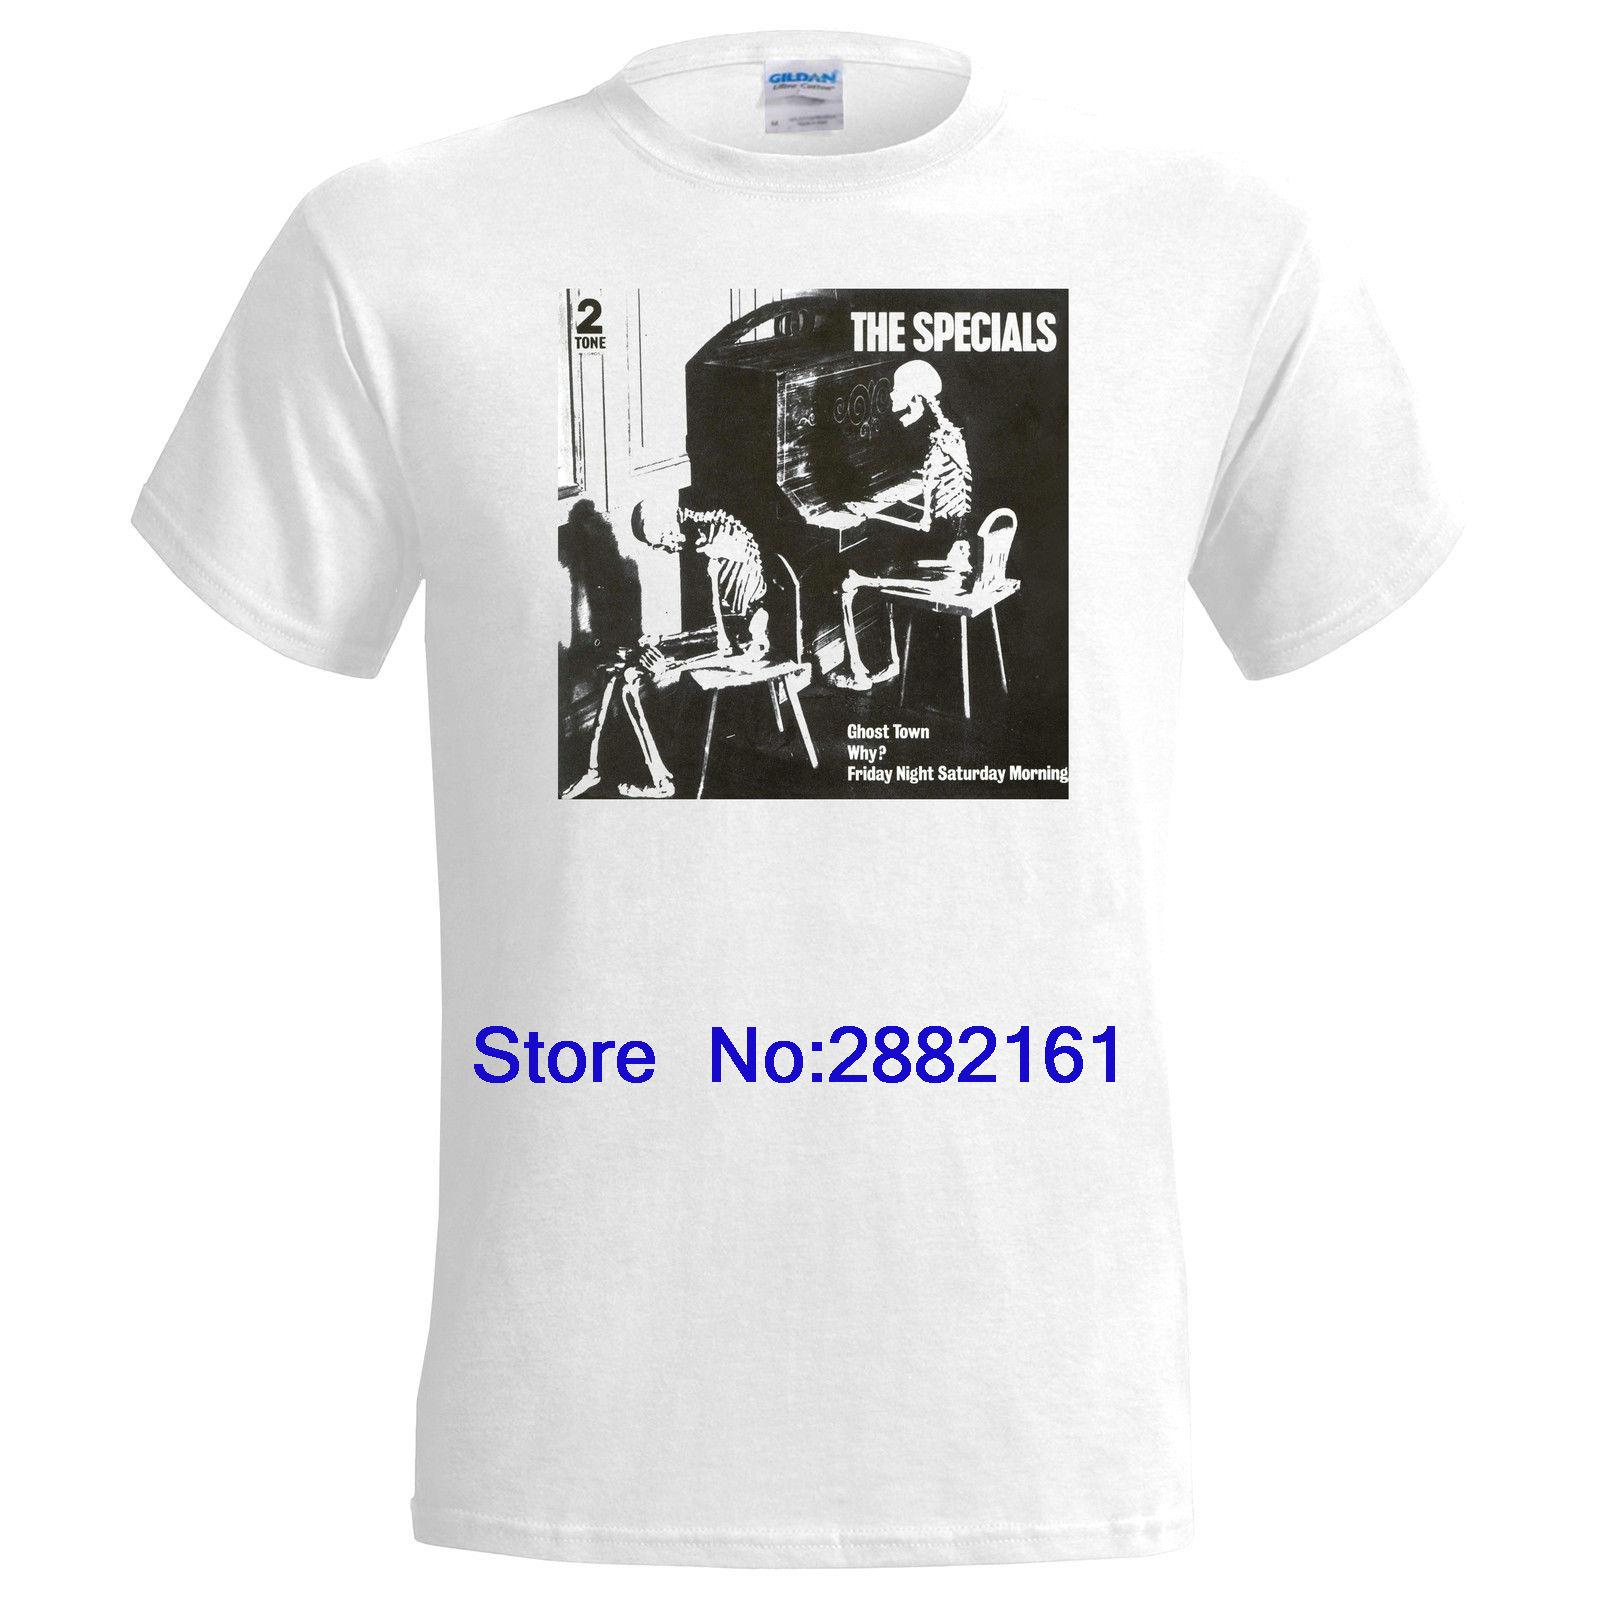 e0f18a42 The Specials Ghost Town Mens T Shirt 2 Tone Ska Madness The Beat Rude Boy T  Shirt Men Tees Brand Clothing Funny Tees Shirts T Shirt Site From  Beidhgate02a, ...